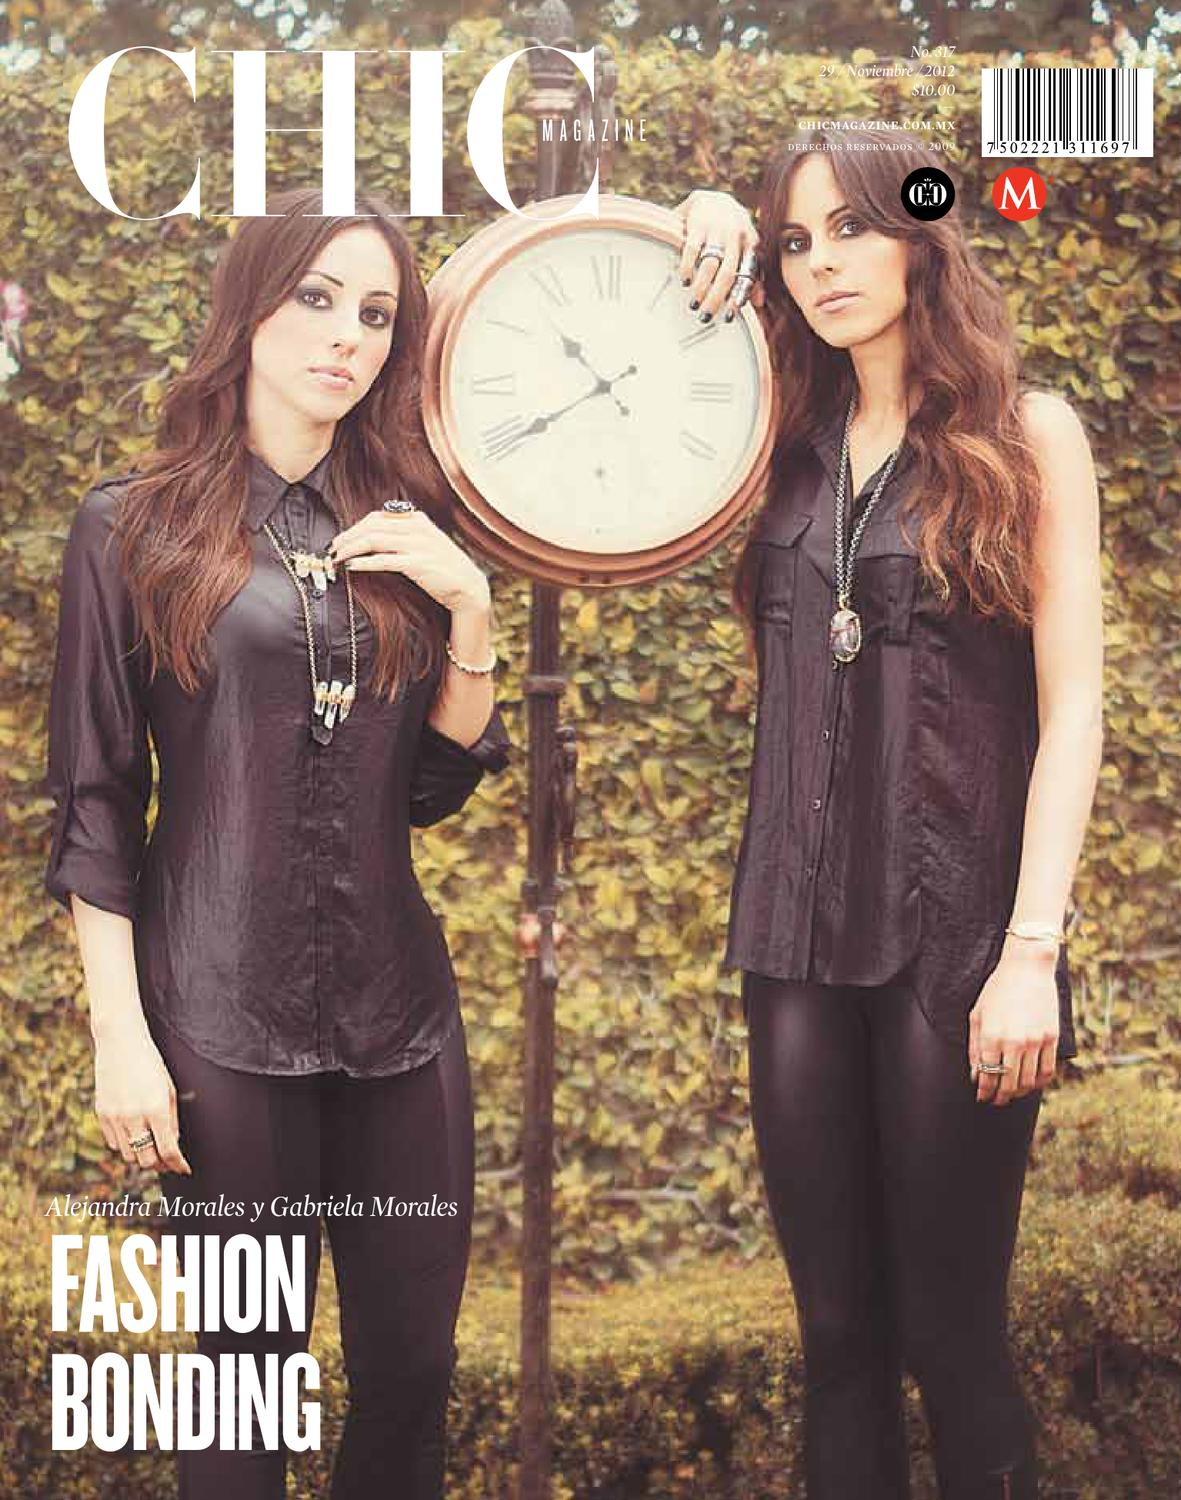 Chic Magazine Monterrey 317 by Chic Magazine Monterrey - issuu